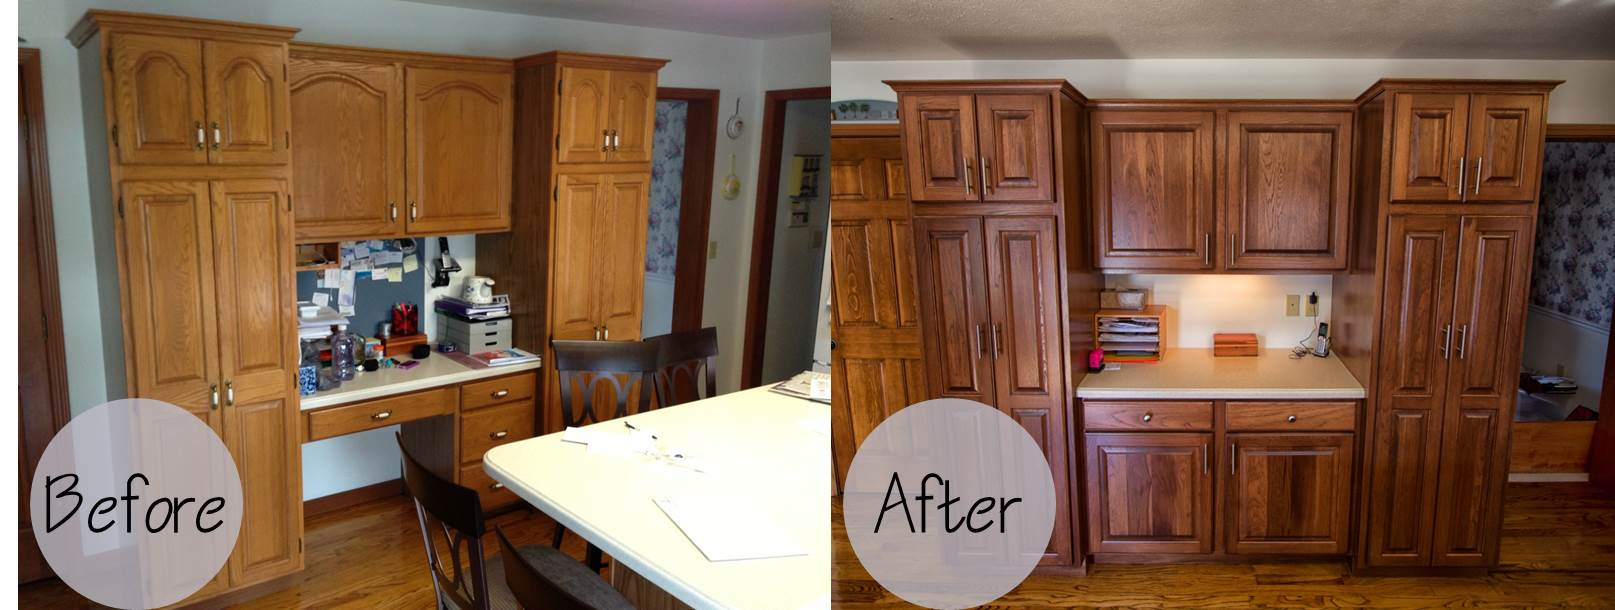 Northeast Philadelphia Cabinet Refacing 215 757 2144 Kitchen